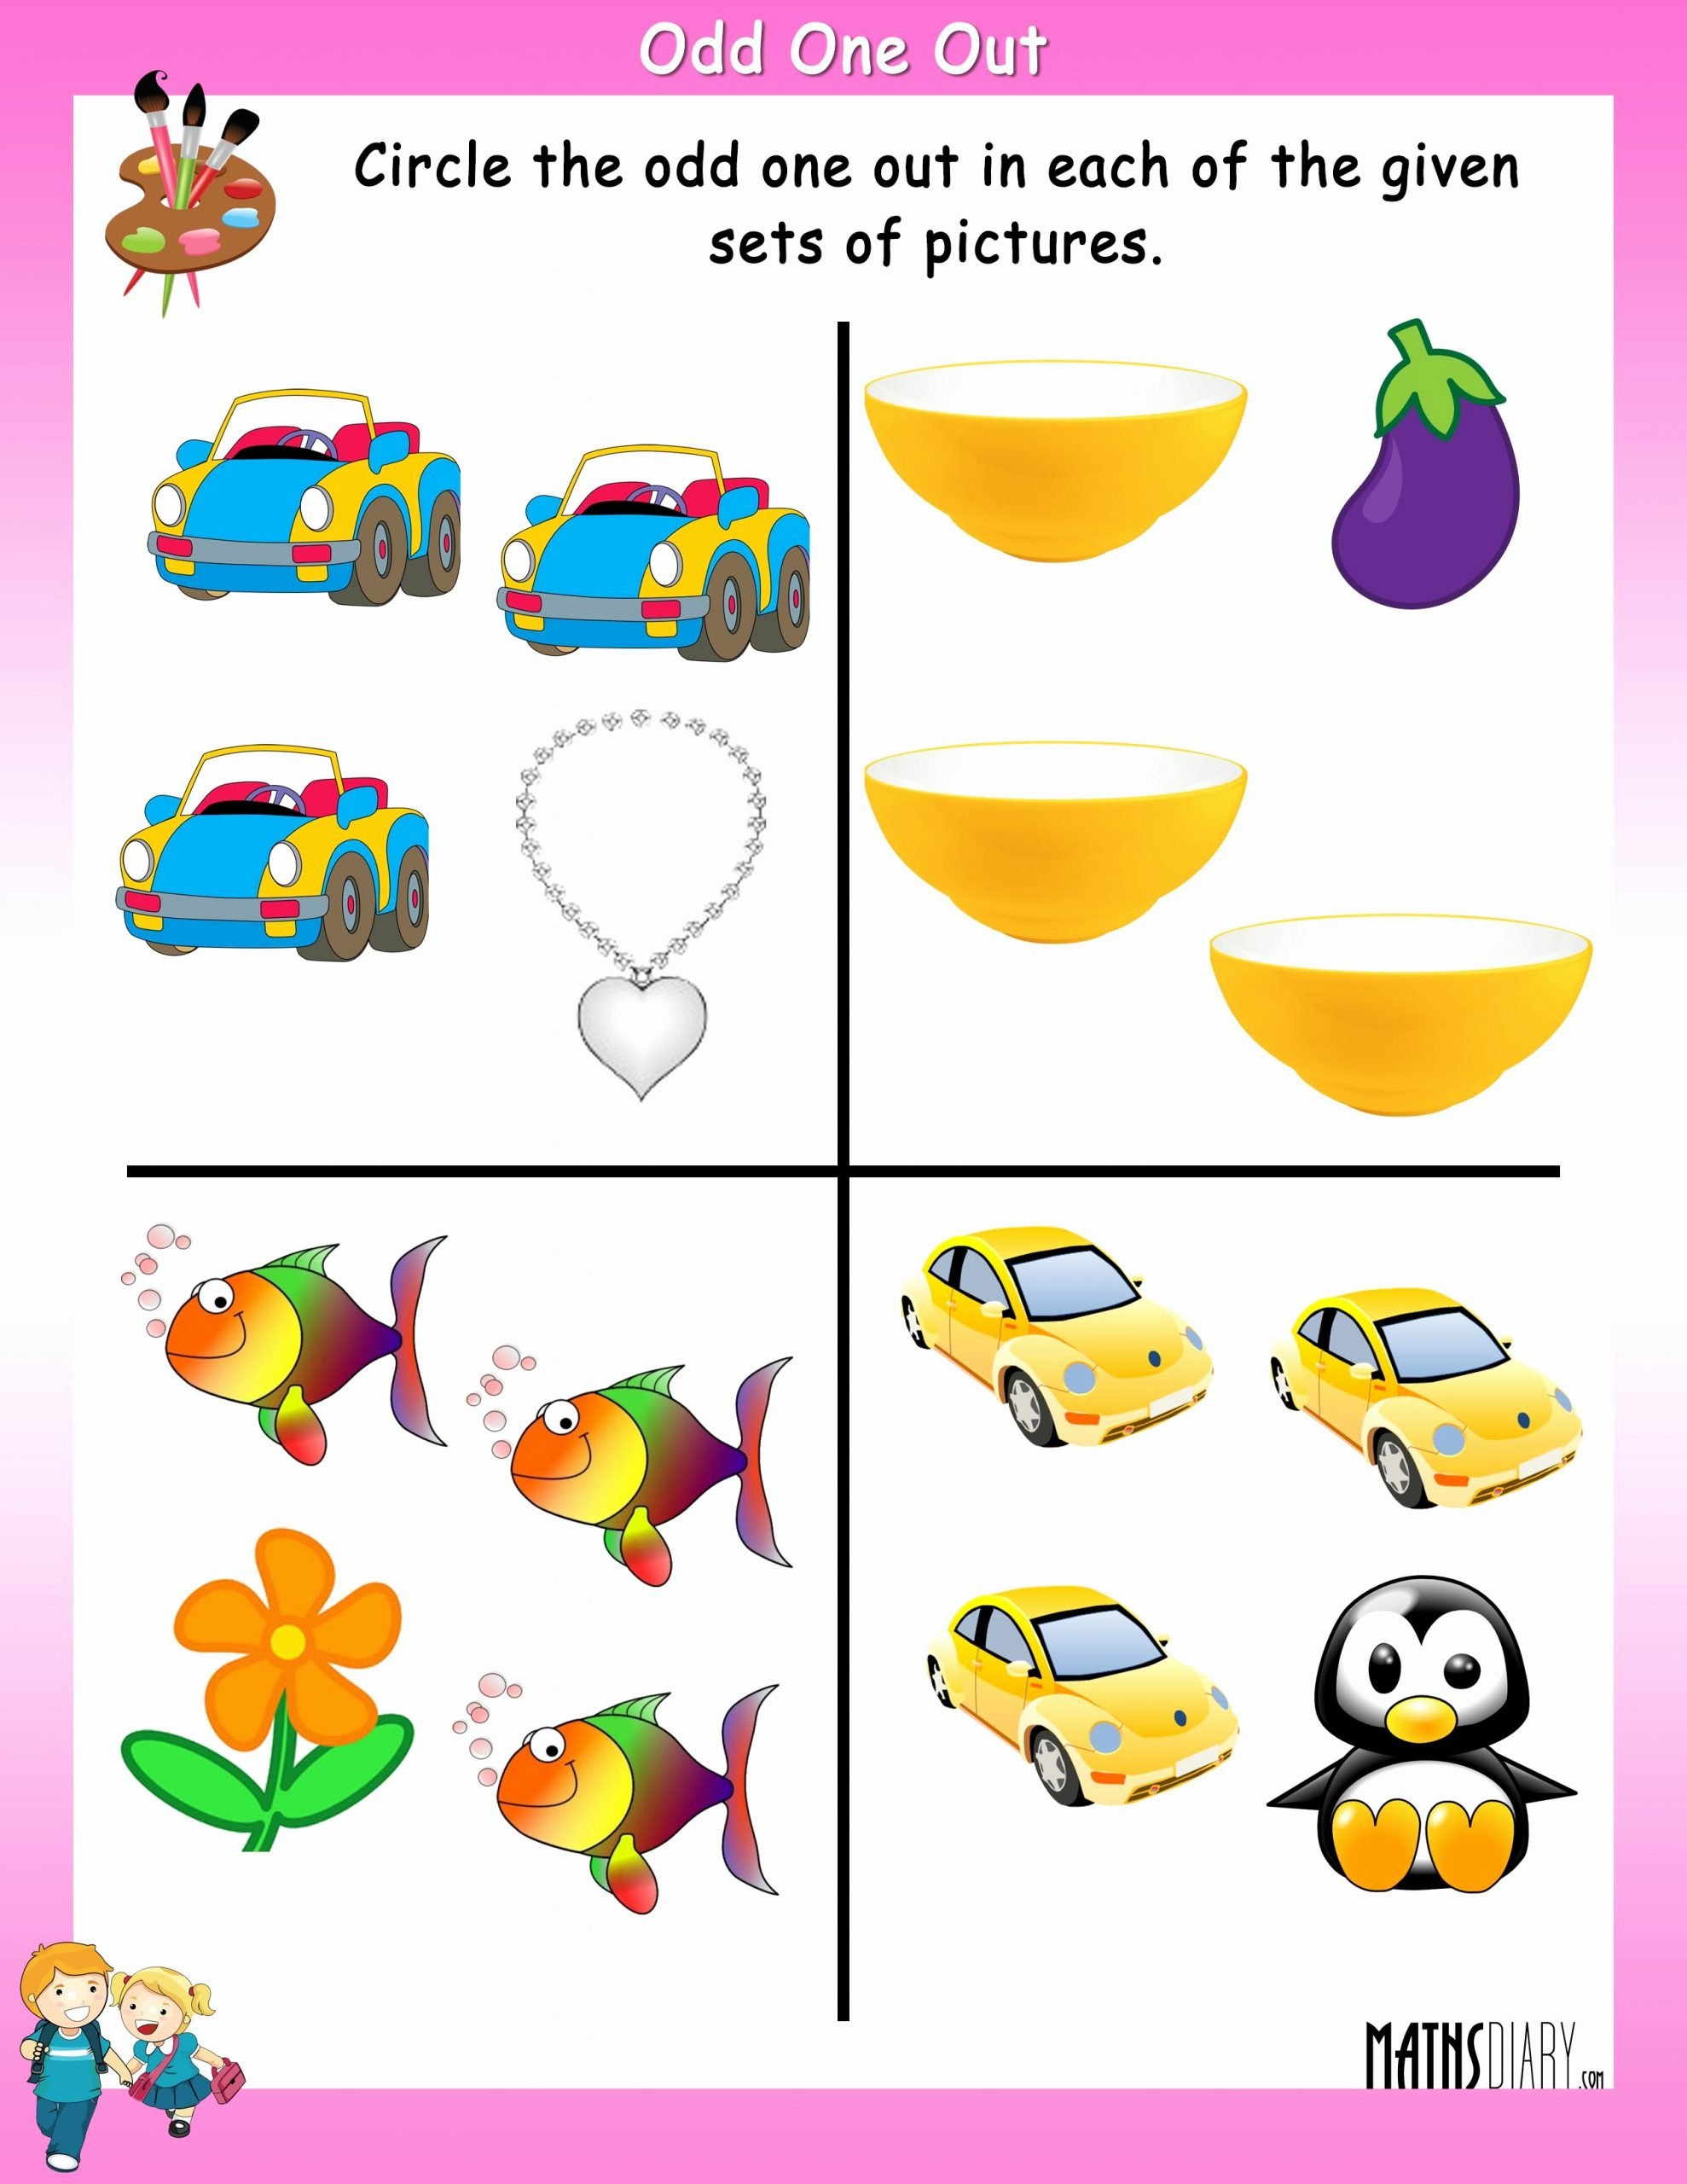 Odd One Out Worksheets for Preschoolers Awesome Circle the Odd One Out Math Worksheets Mathsdiary